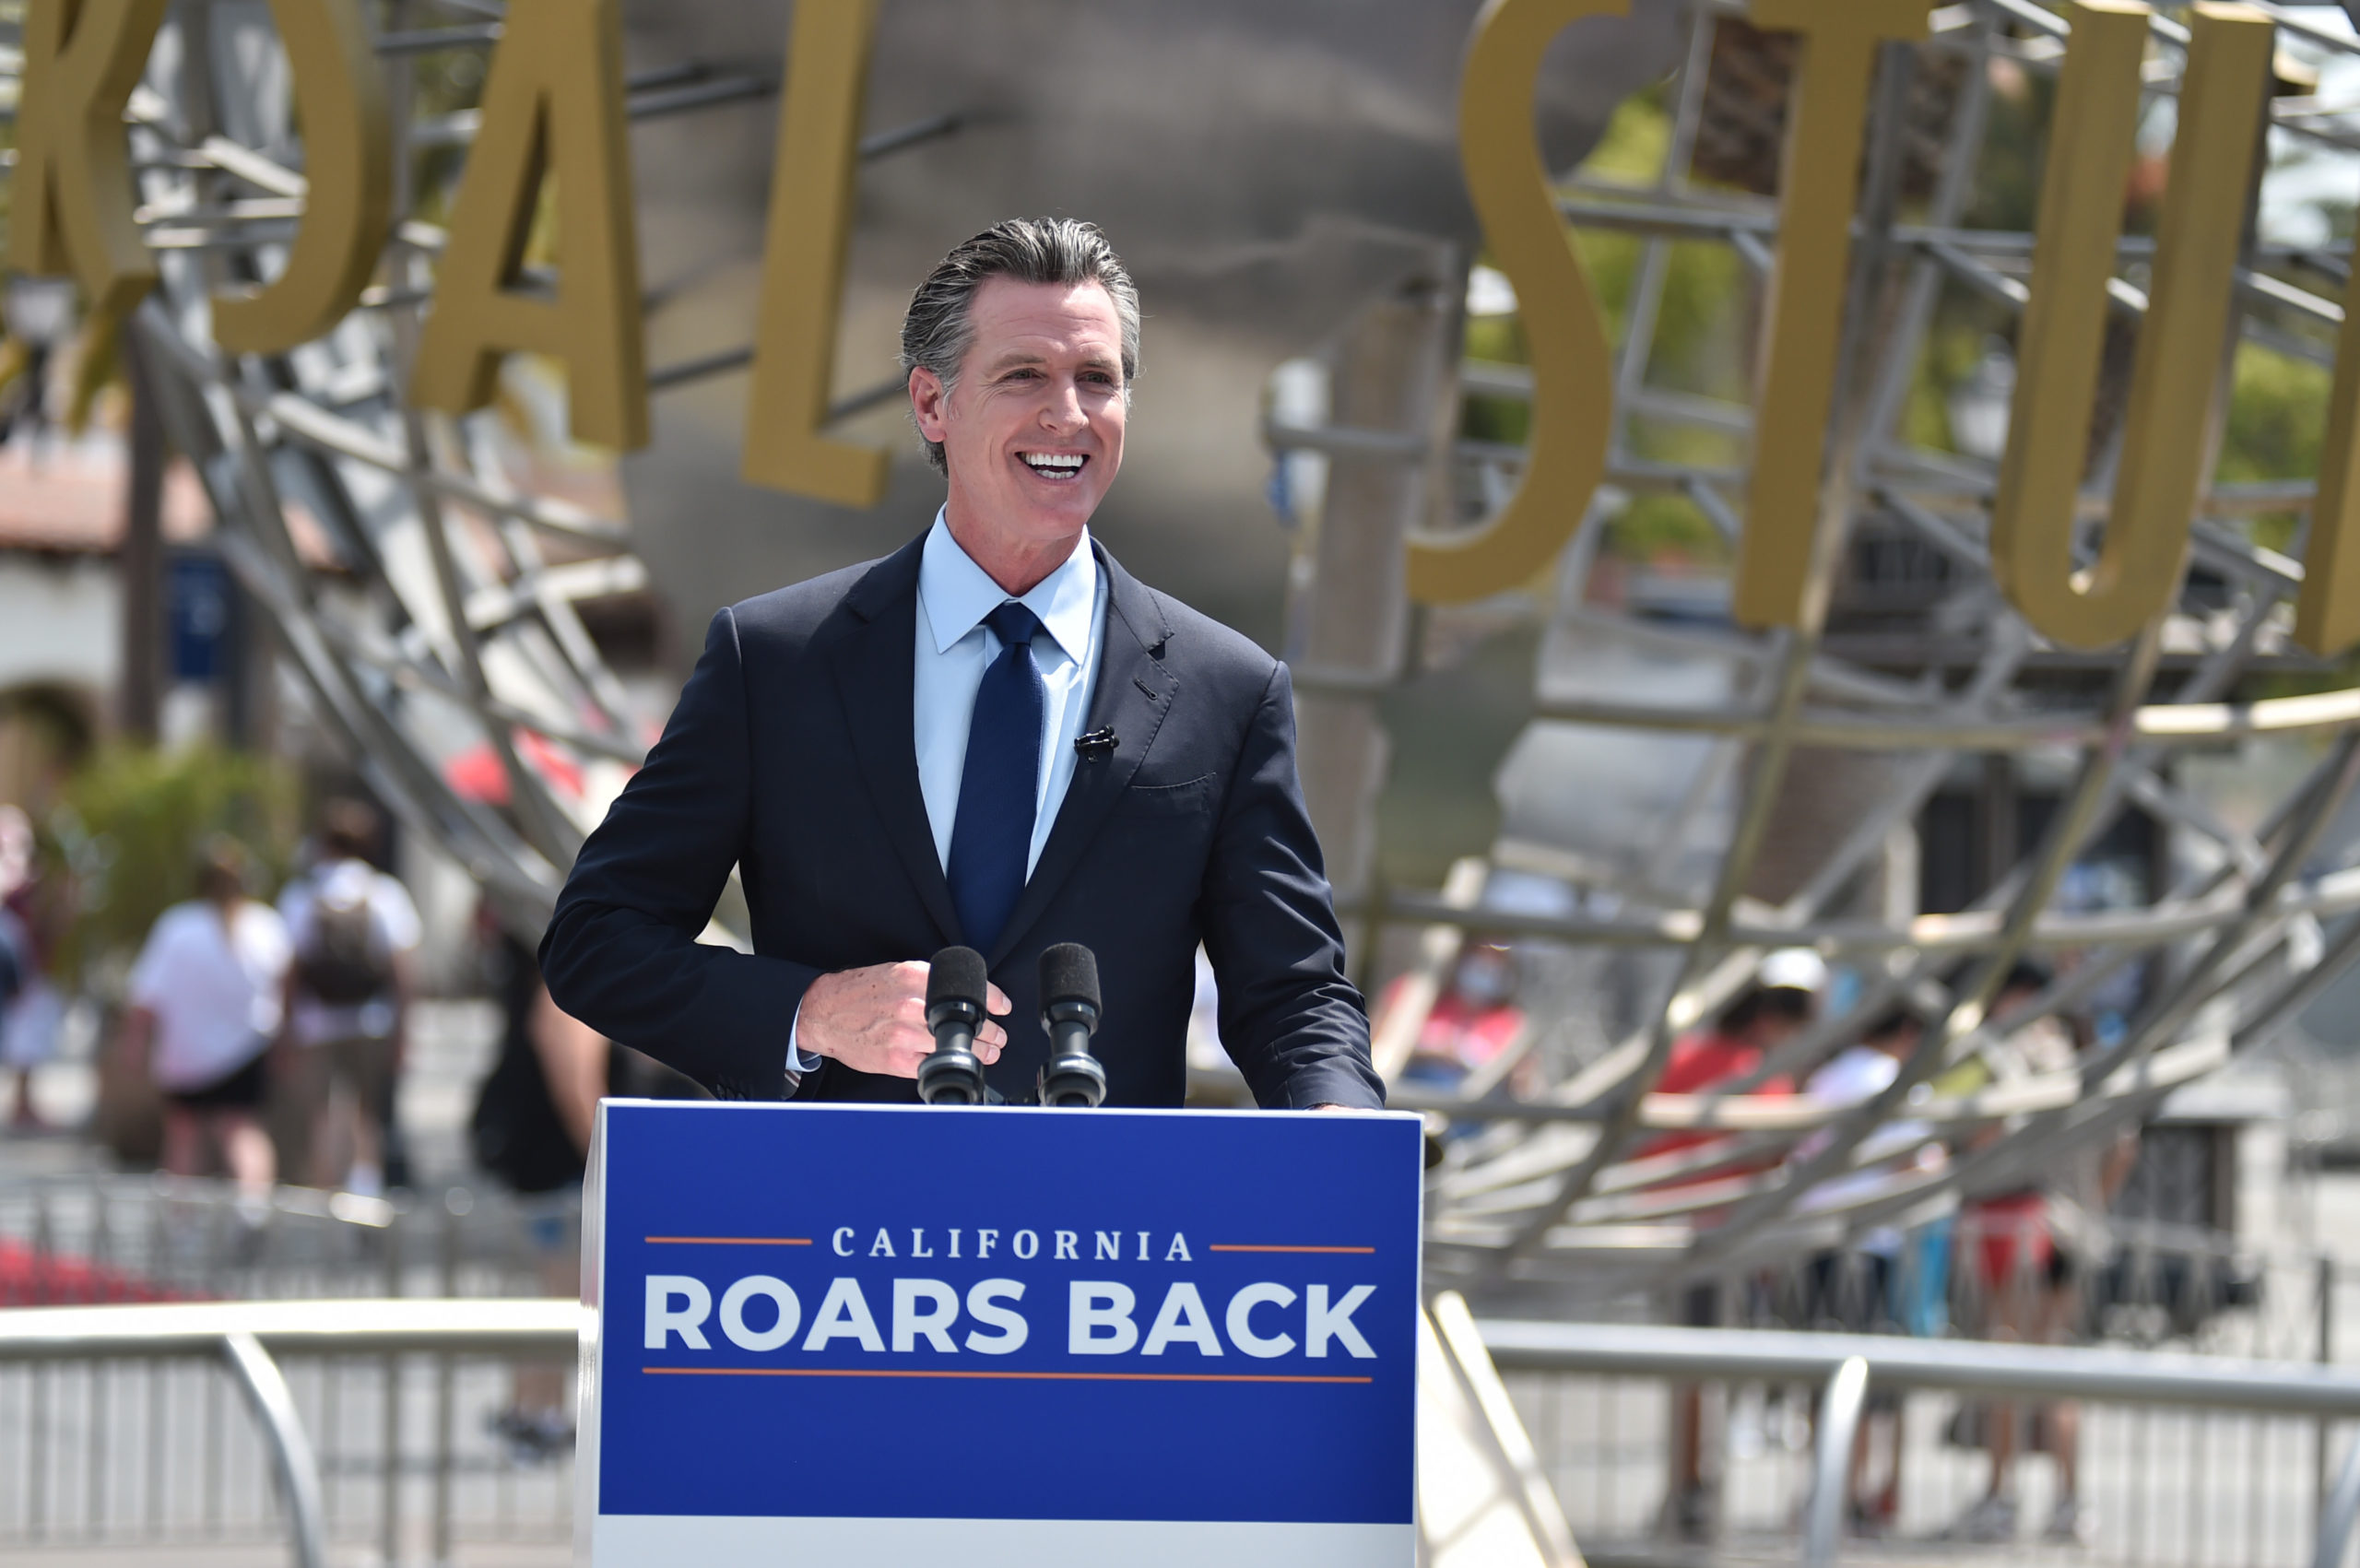 California Gov. Gavin Newsom attends a press conference celebrating the states official reopening at Universal Studios Hollywood on June 15. (Alberto E. Rodriguez/Getty Images)